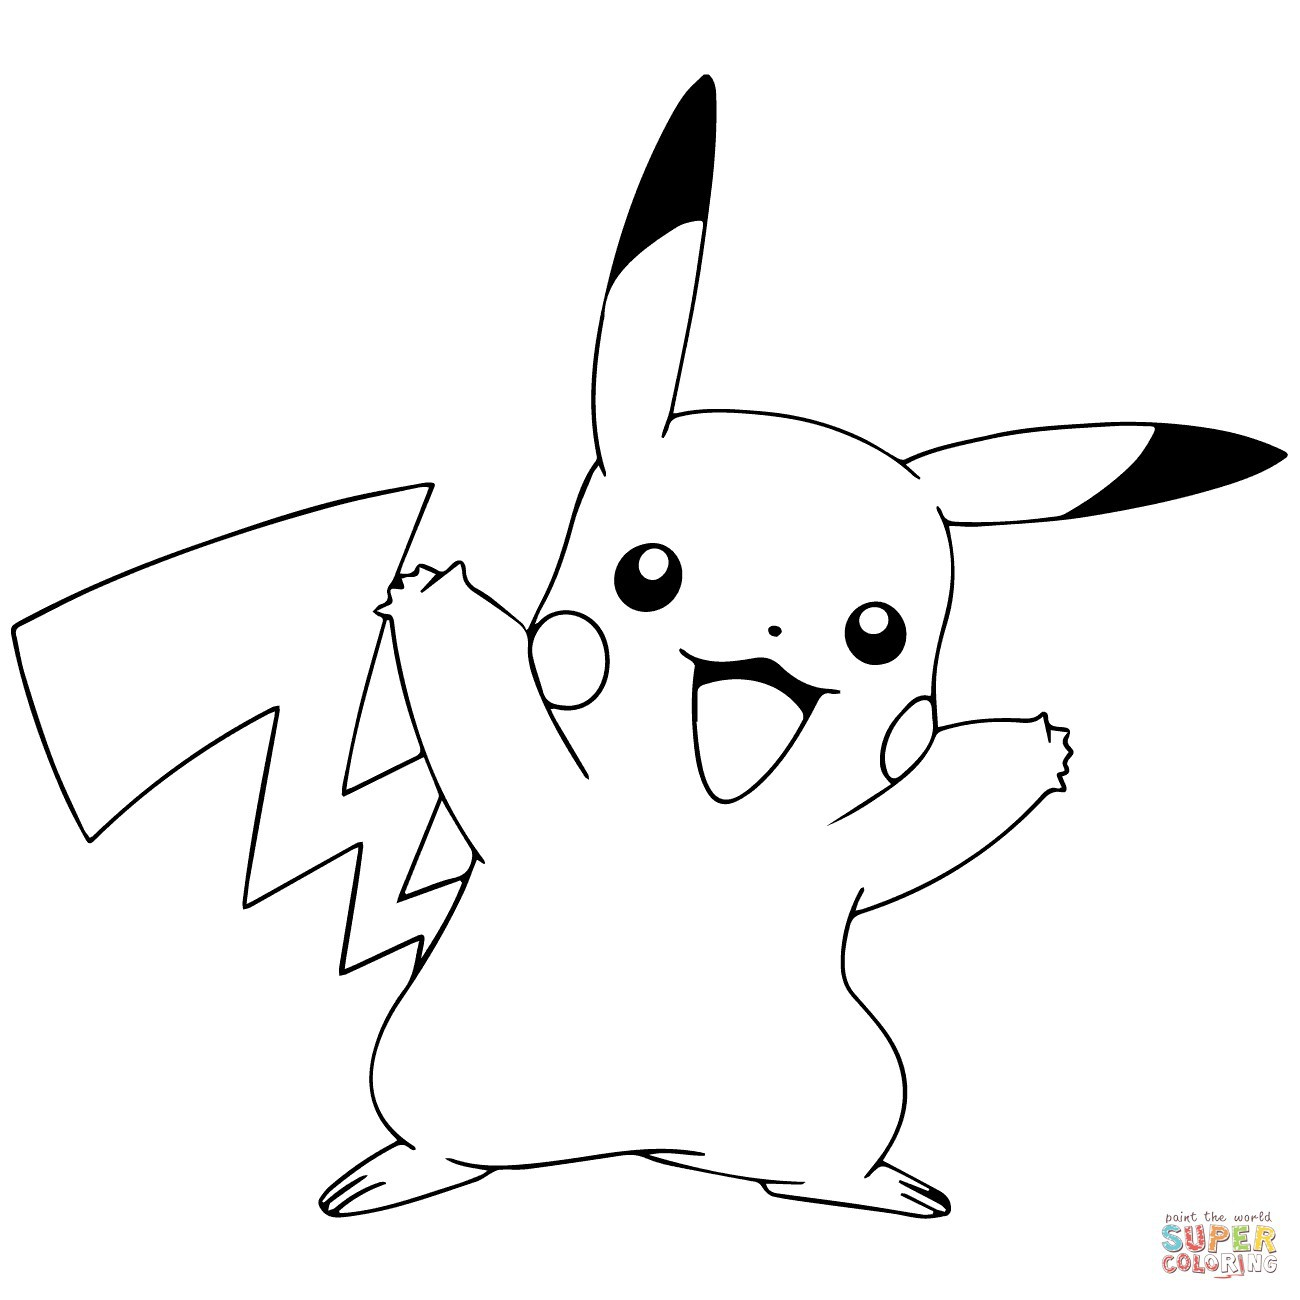 pikachu-pokemon-go-coloring-pages-of-pikachu-pokemon-go-coloring-pages Pikachu Pokemon Go Coloring Pages Cartoon